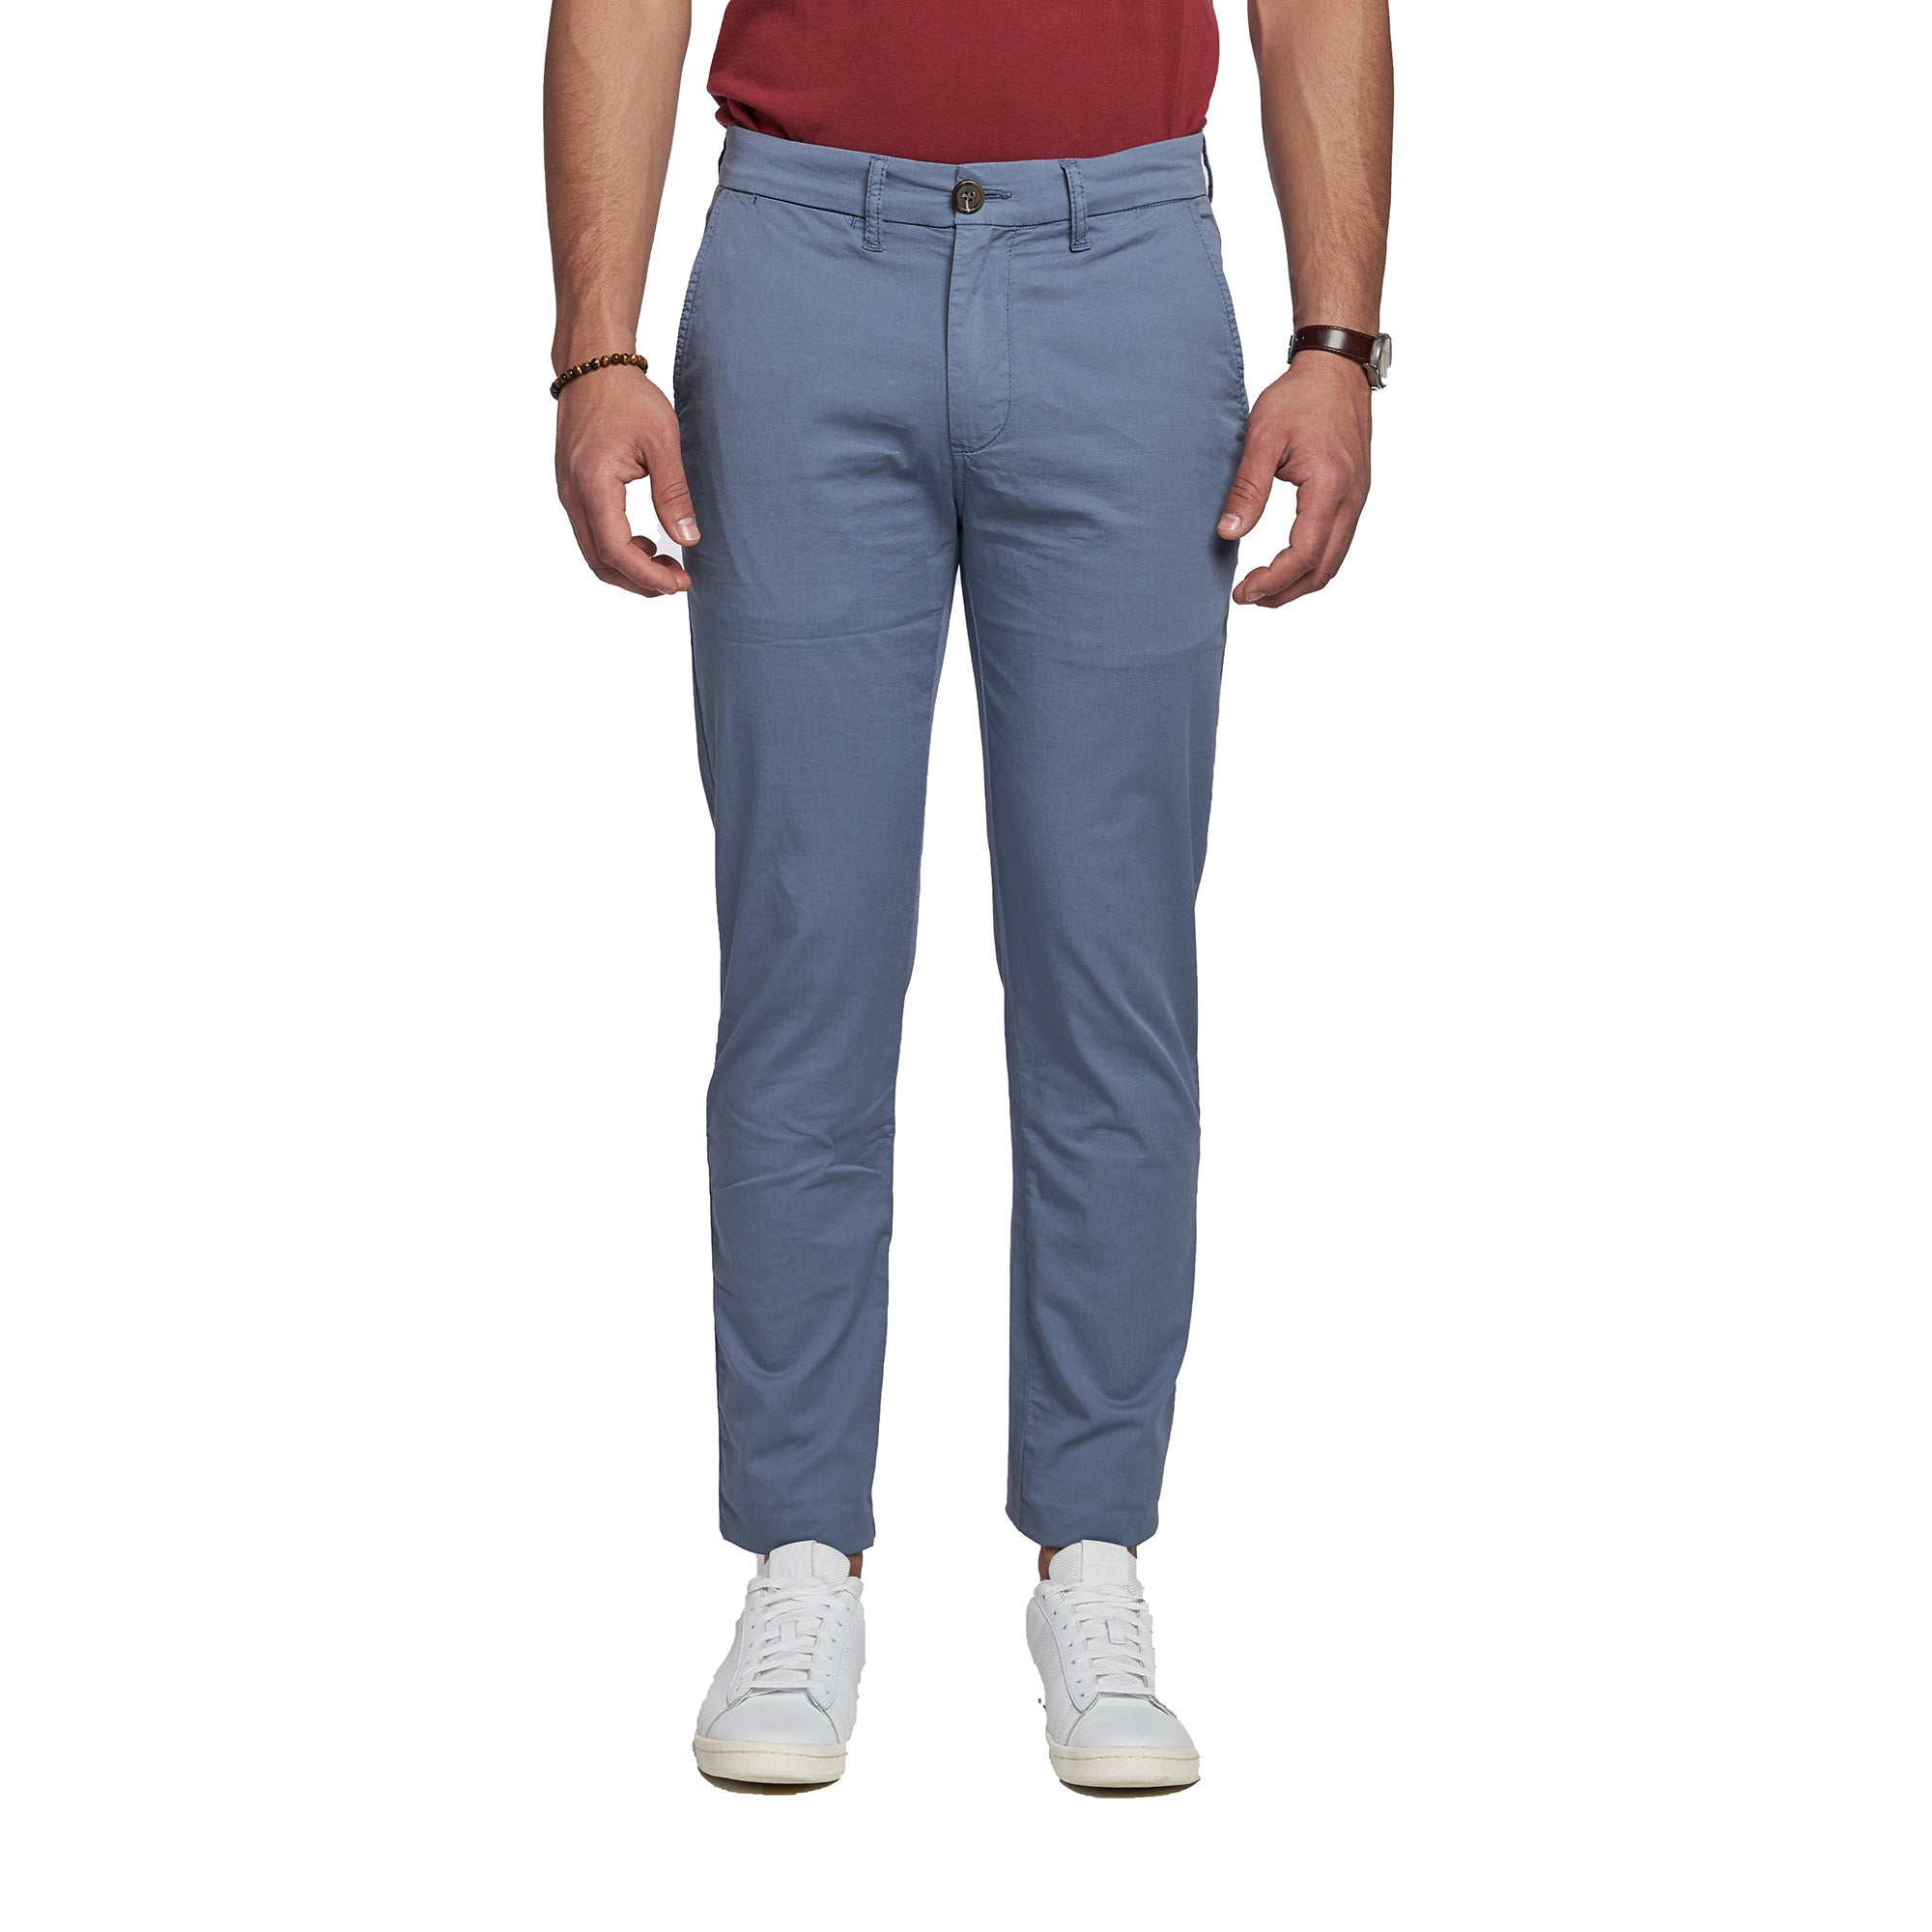 Lightweight Stretch Chinos - Slate Blue